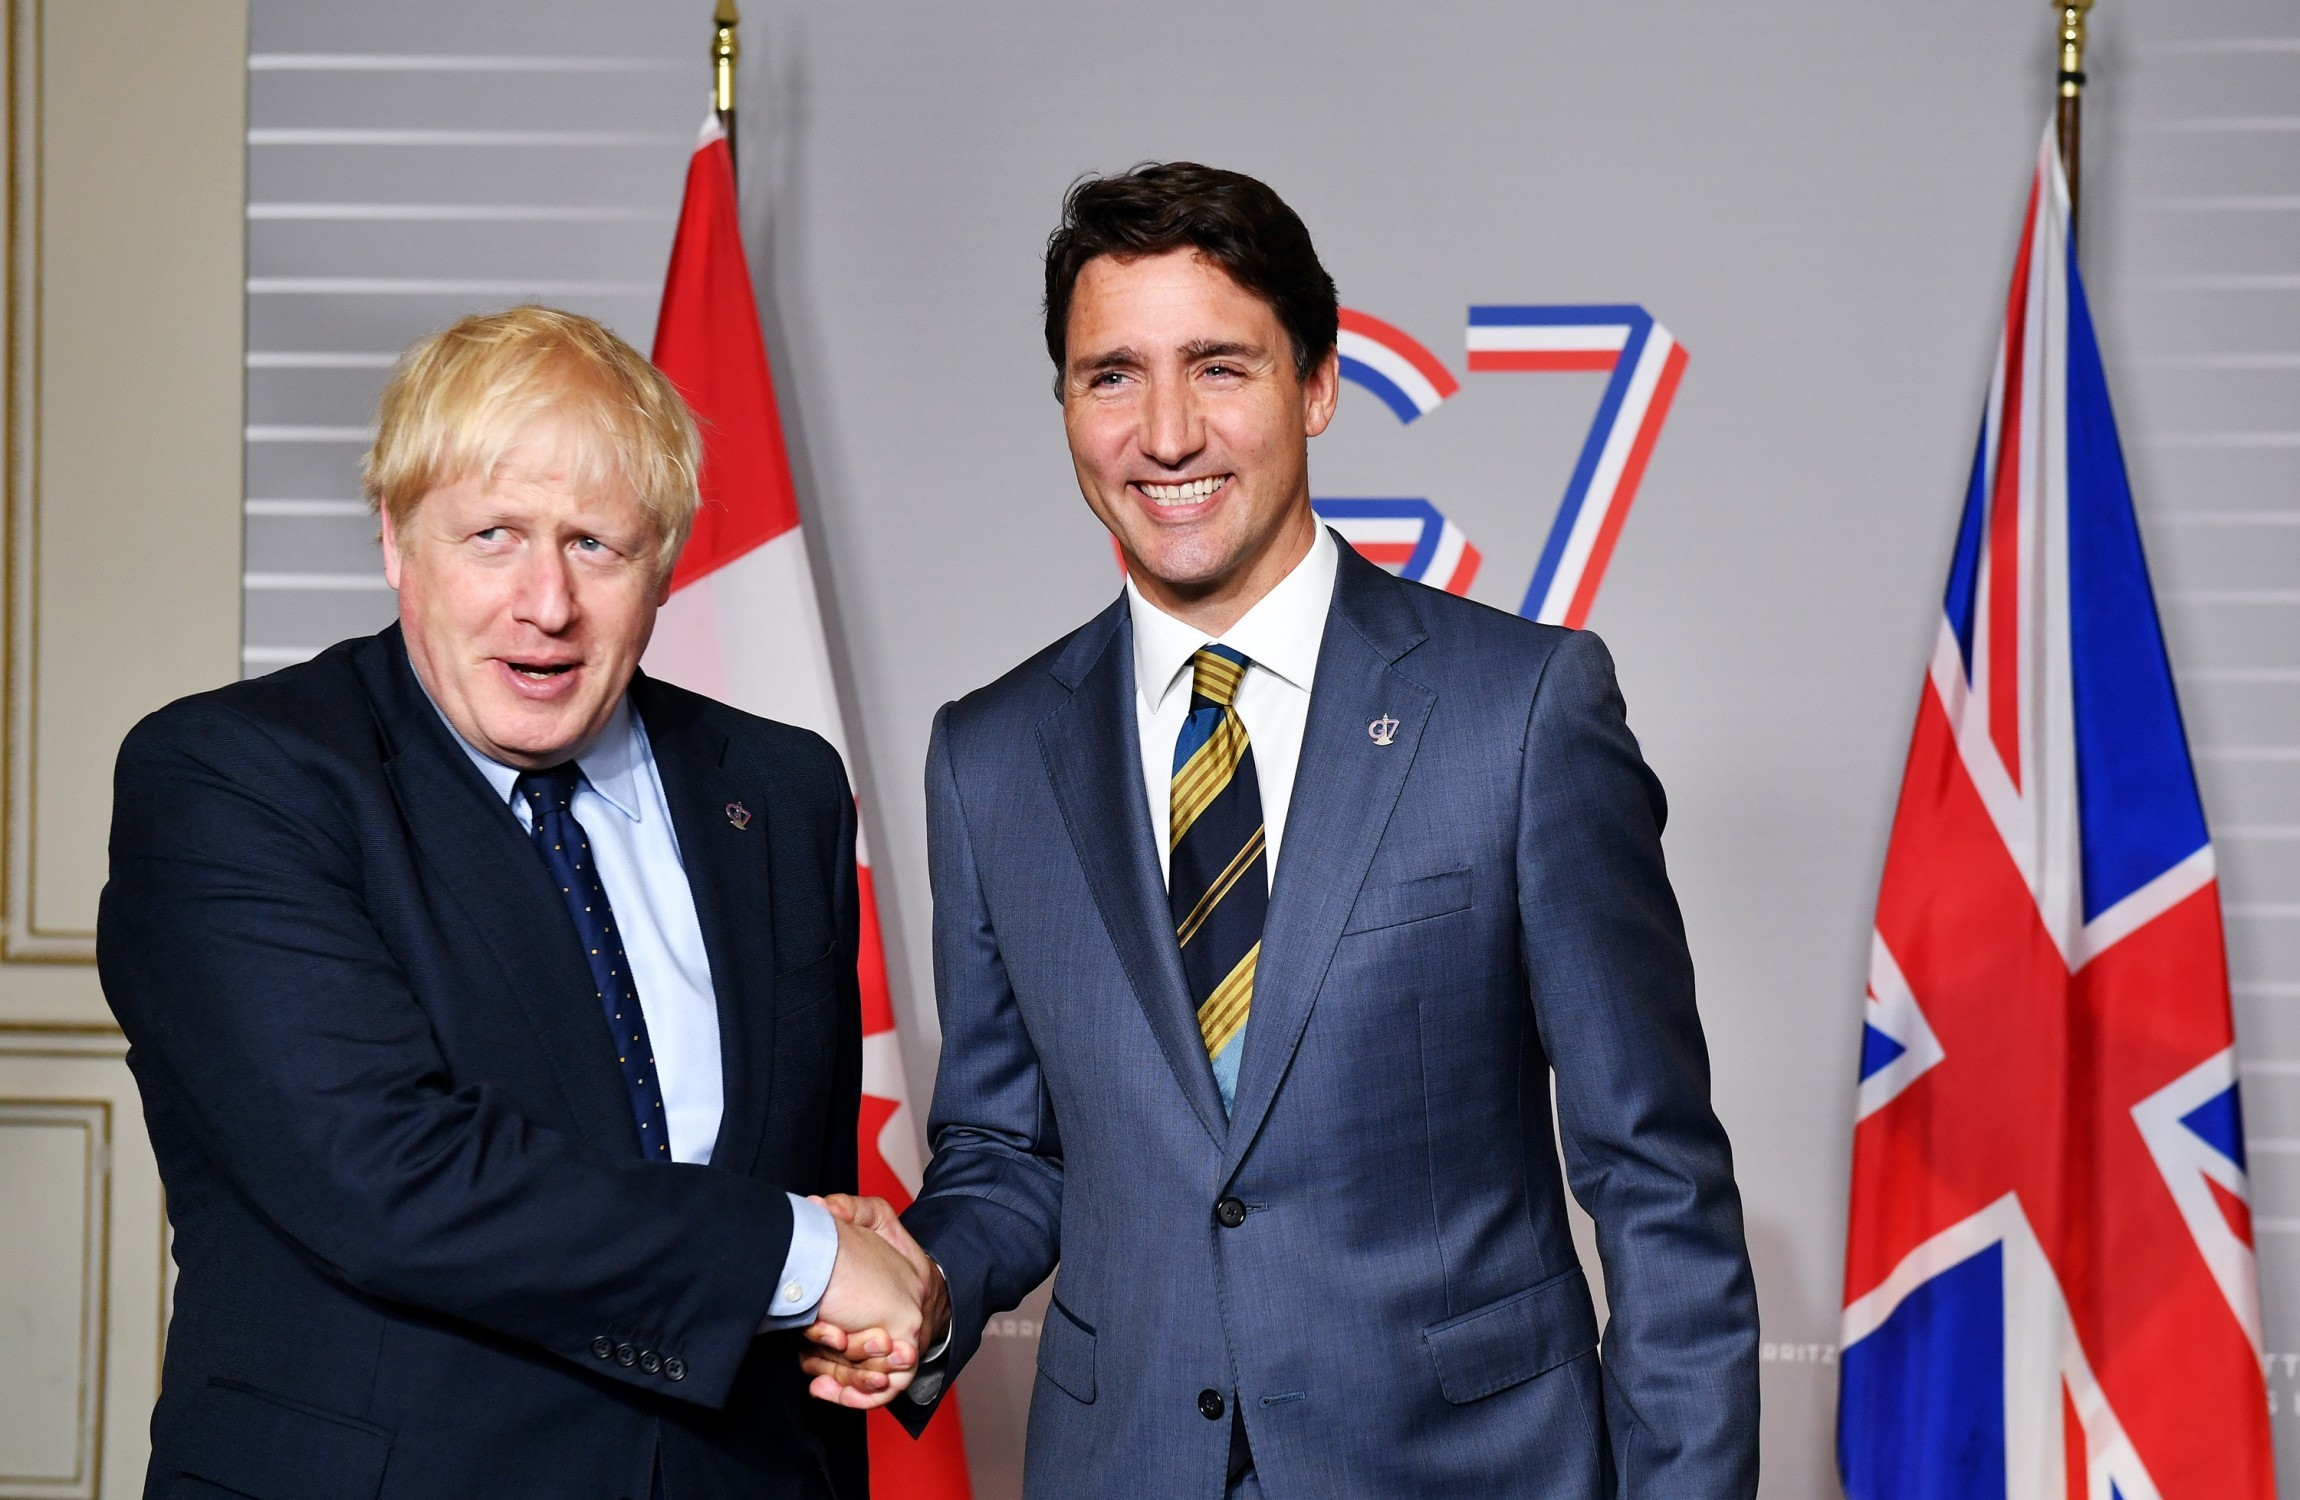 Britain and Canada sign trade agreement